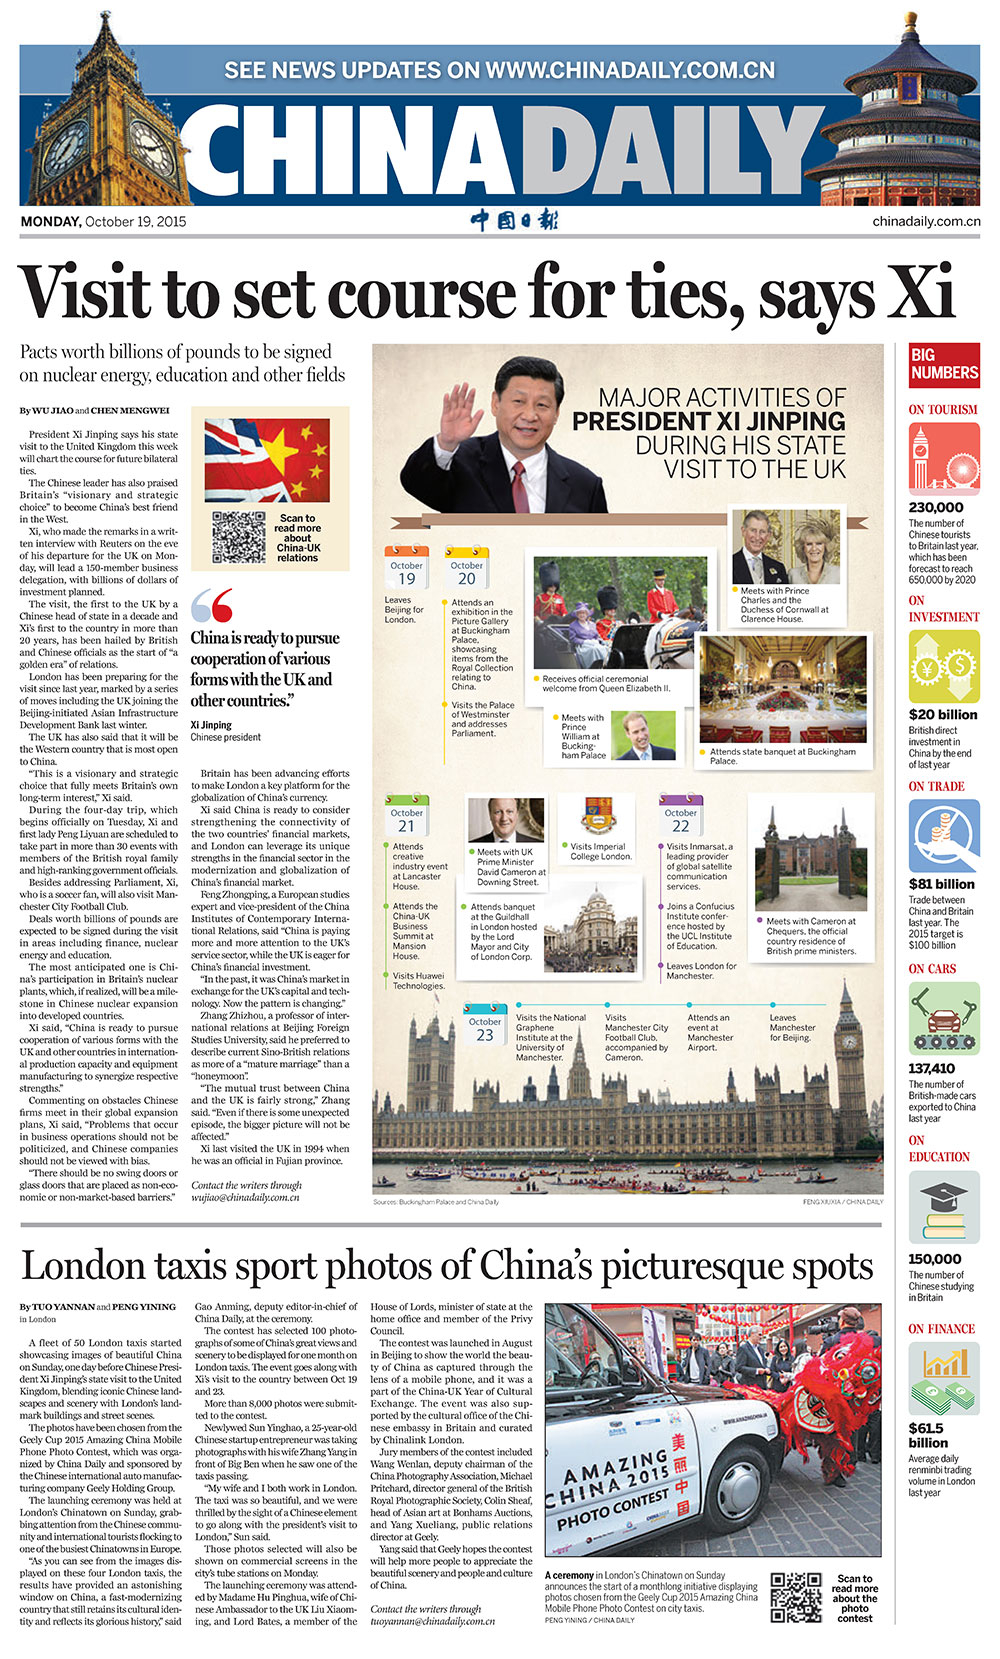 'China Daily,' European edition, October 19, 2015.